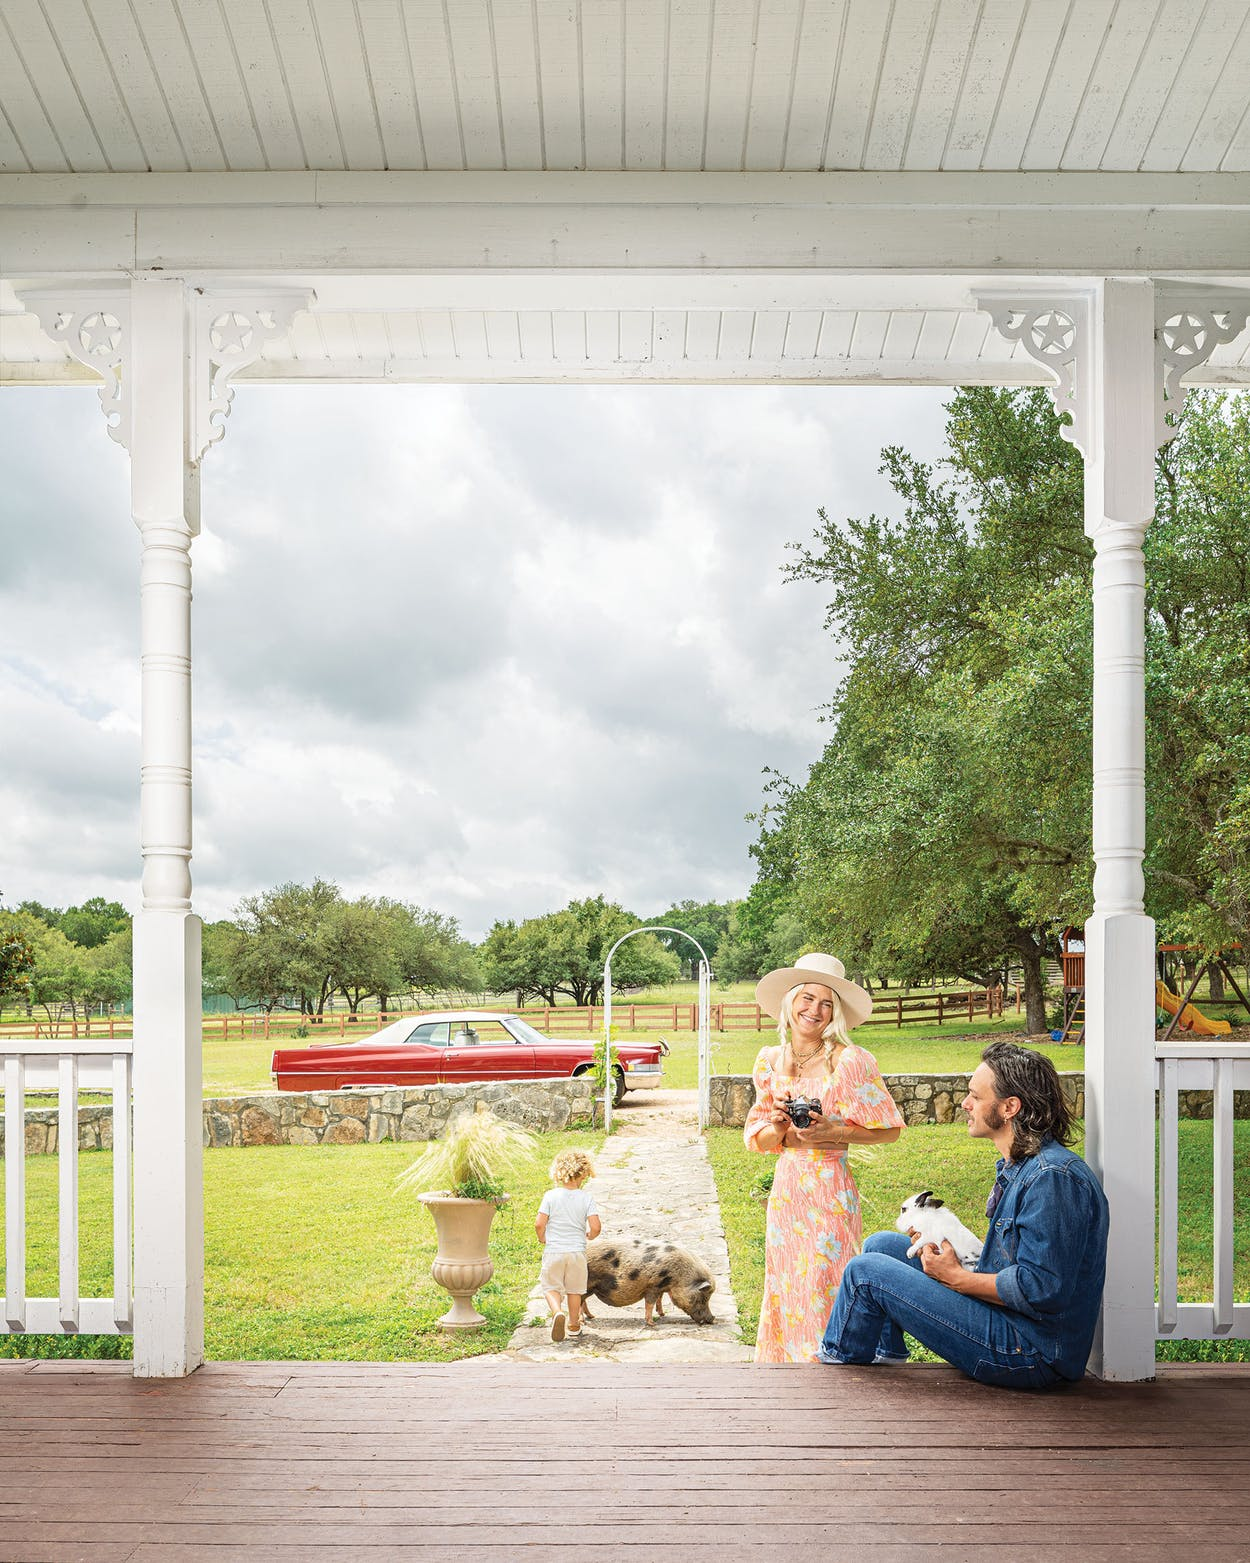 Harper Smith, Cameron Duddy, and their son outside of their home in Dripping Springs on May 17, 2019.